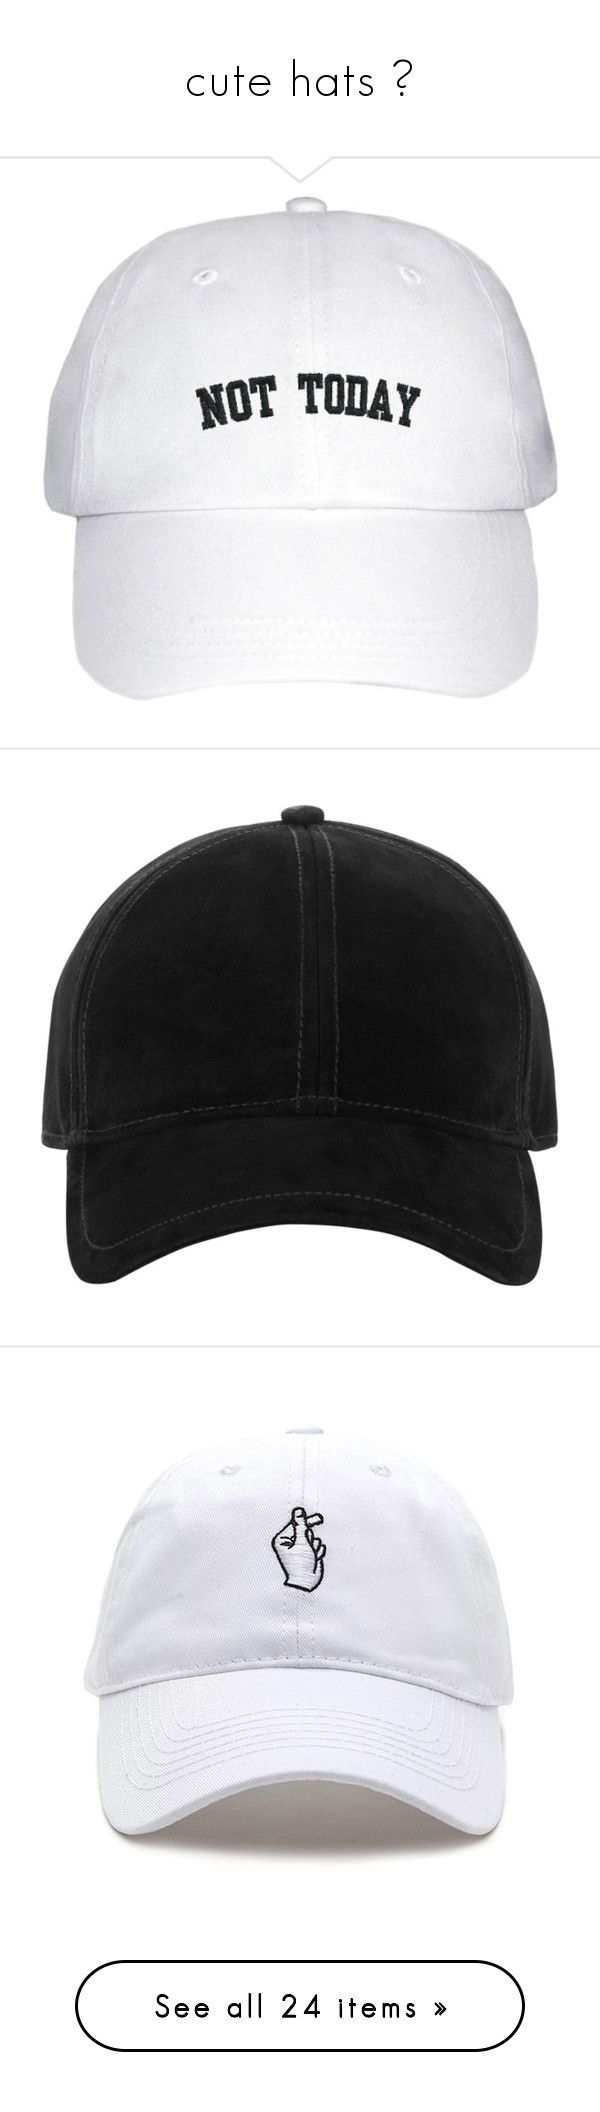 """""""cute hats """" by sannannanna ❤ liked on Polyvore featuring accessories, hats, caps, acc, black, baseball hats, suede cap, ball cap hats, suede baseball caps and suede baseball hats"""